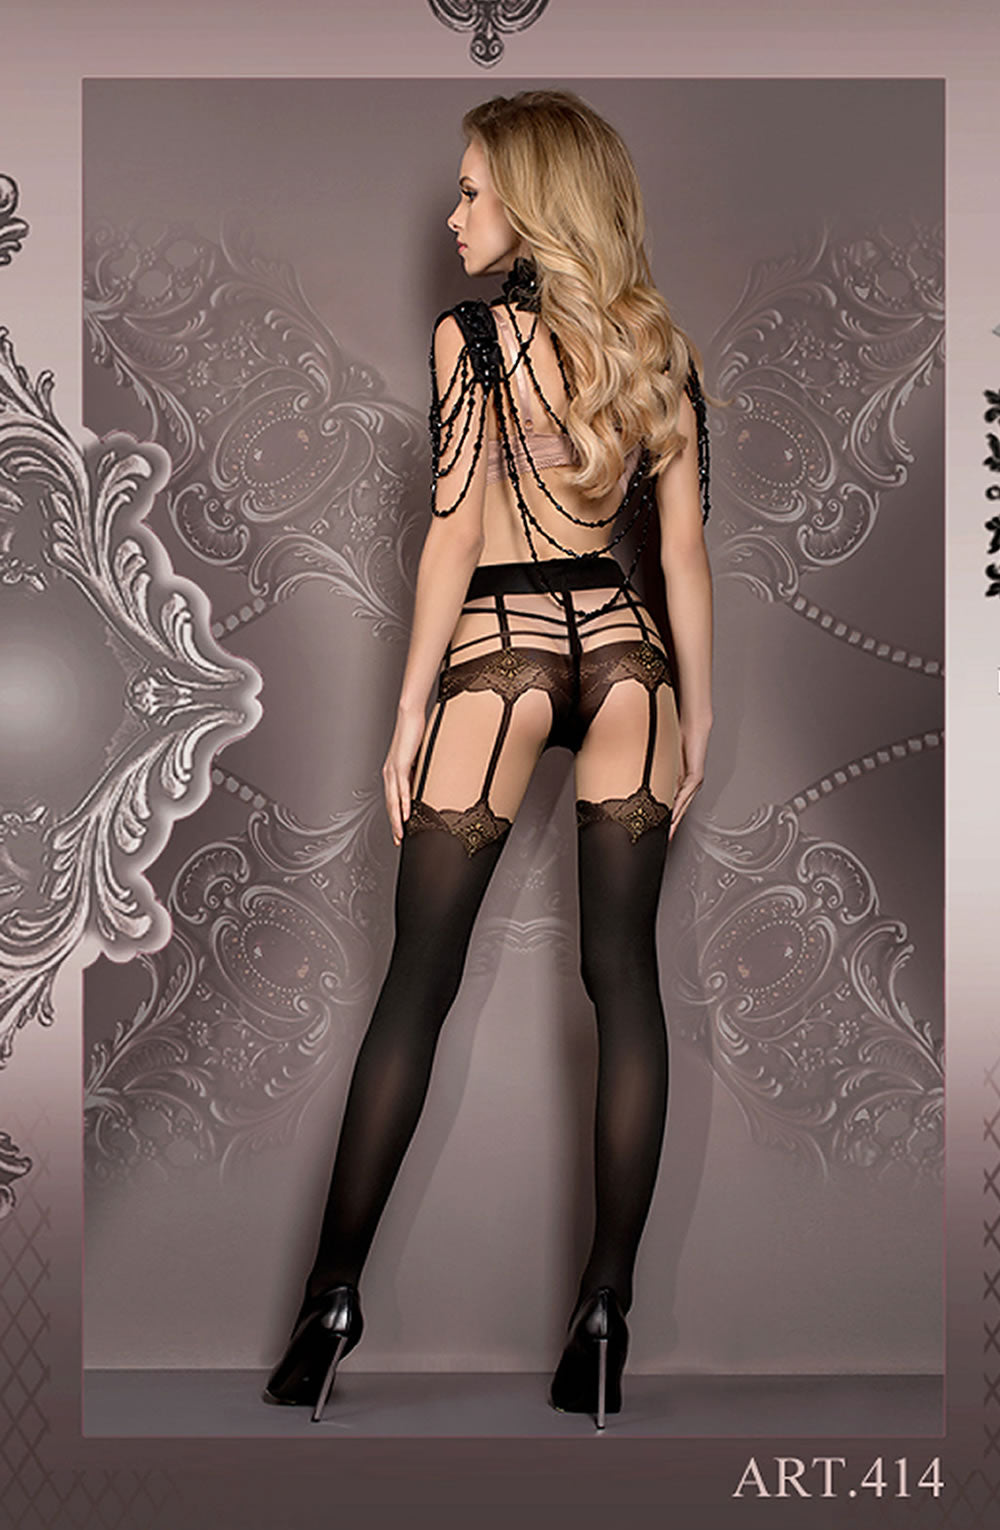 BALLERINA 414 Tights Nerkin  Ballerina, Hosiery, NEWLY-IMPORTED, Tights - So Luxe Lingerie